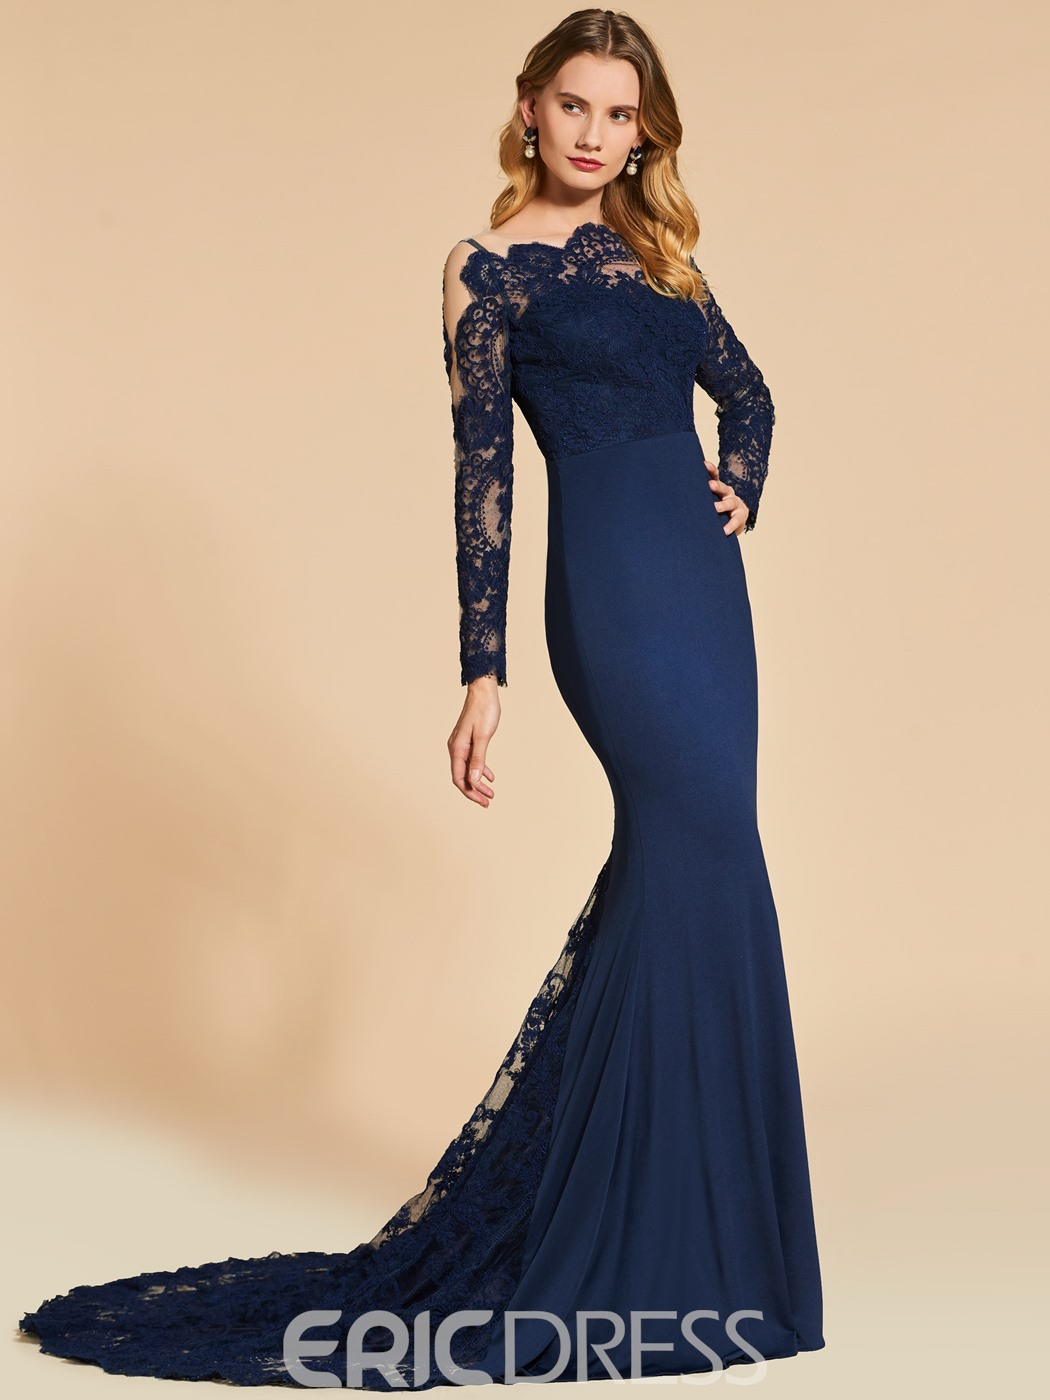 fdb904e9a78 Ericdress Long Sleeve Off The Shoulder Applique Lace Mermaid Evening Dress (13099474)